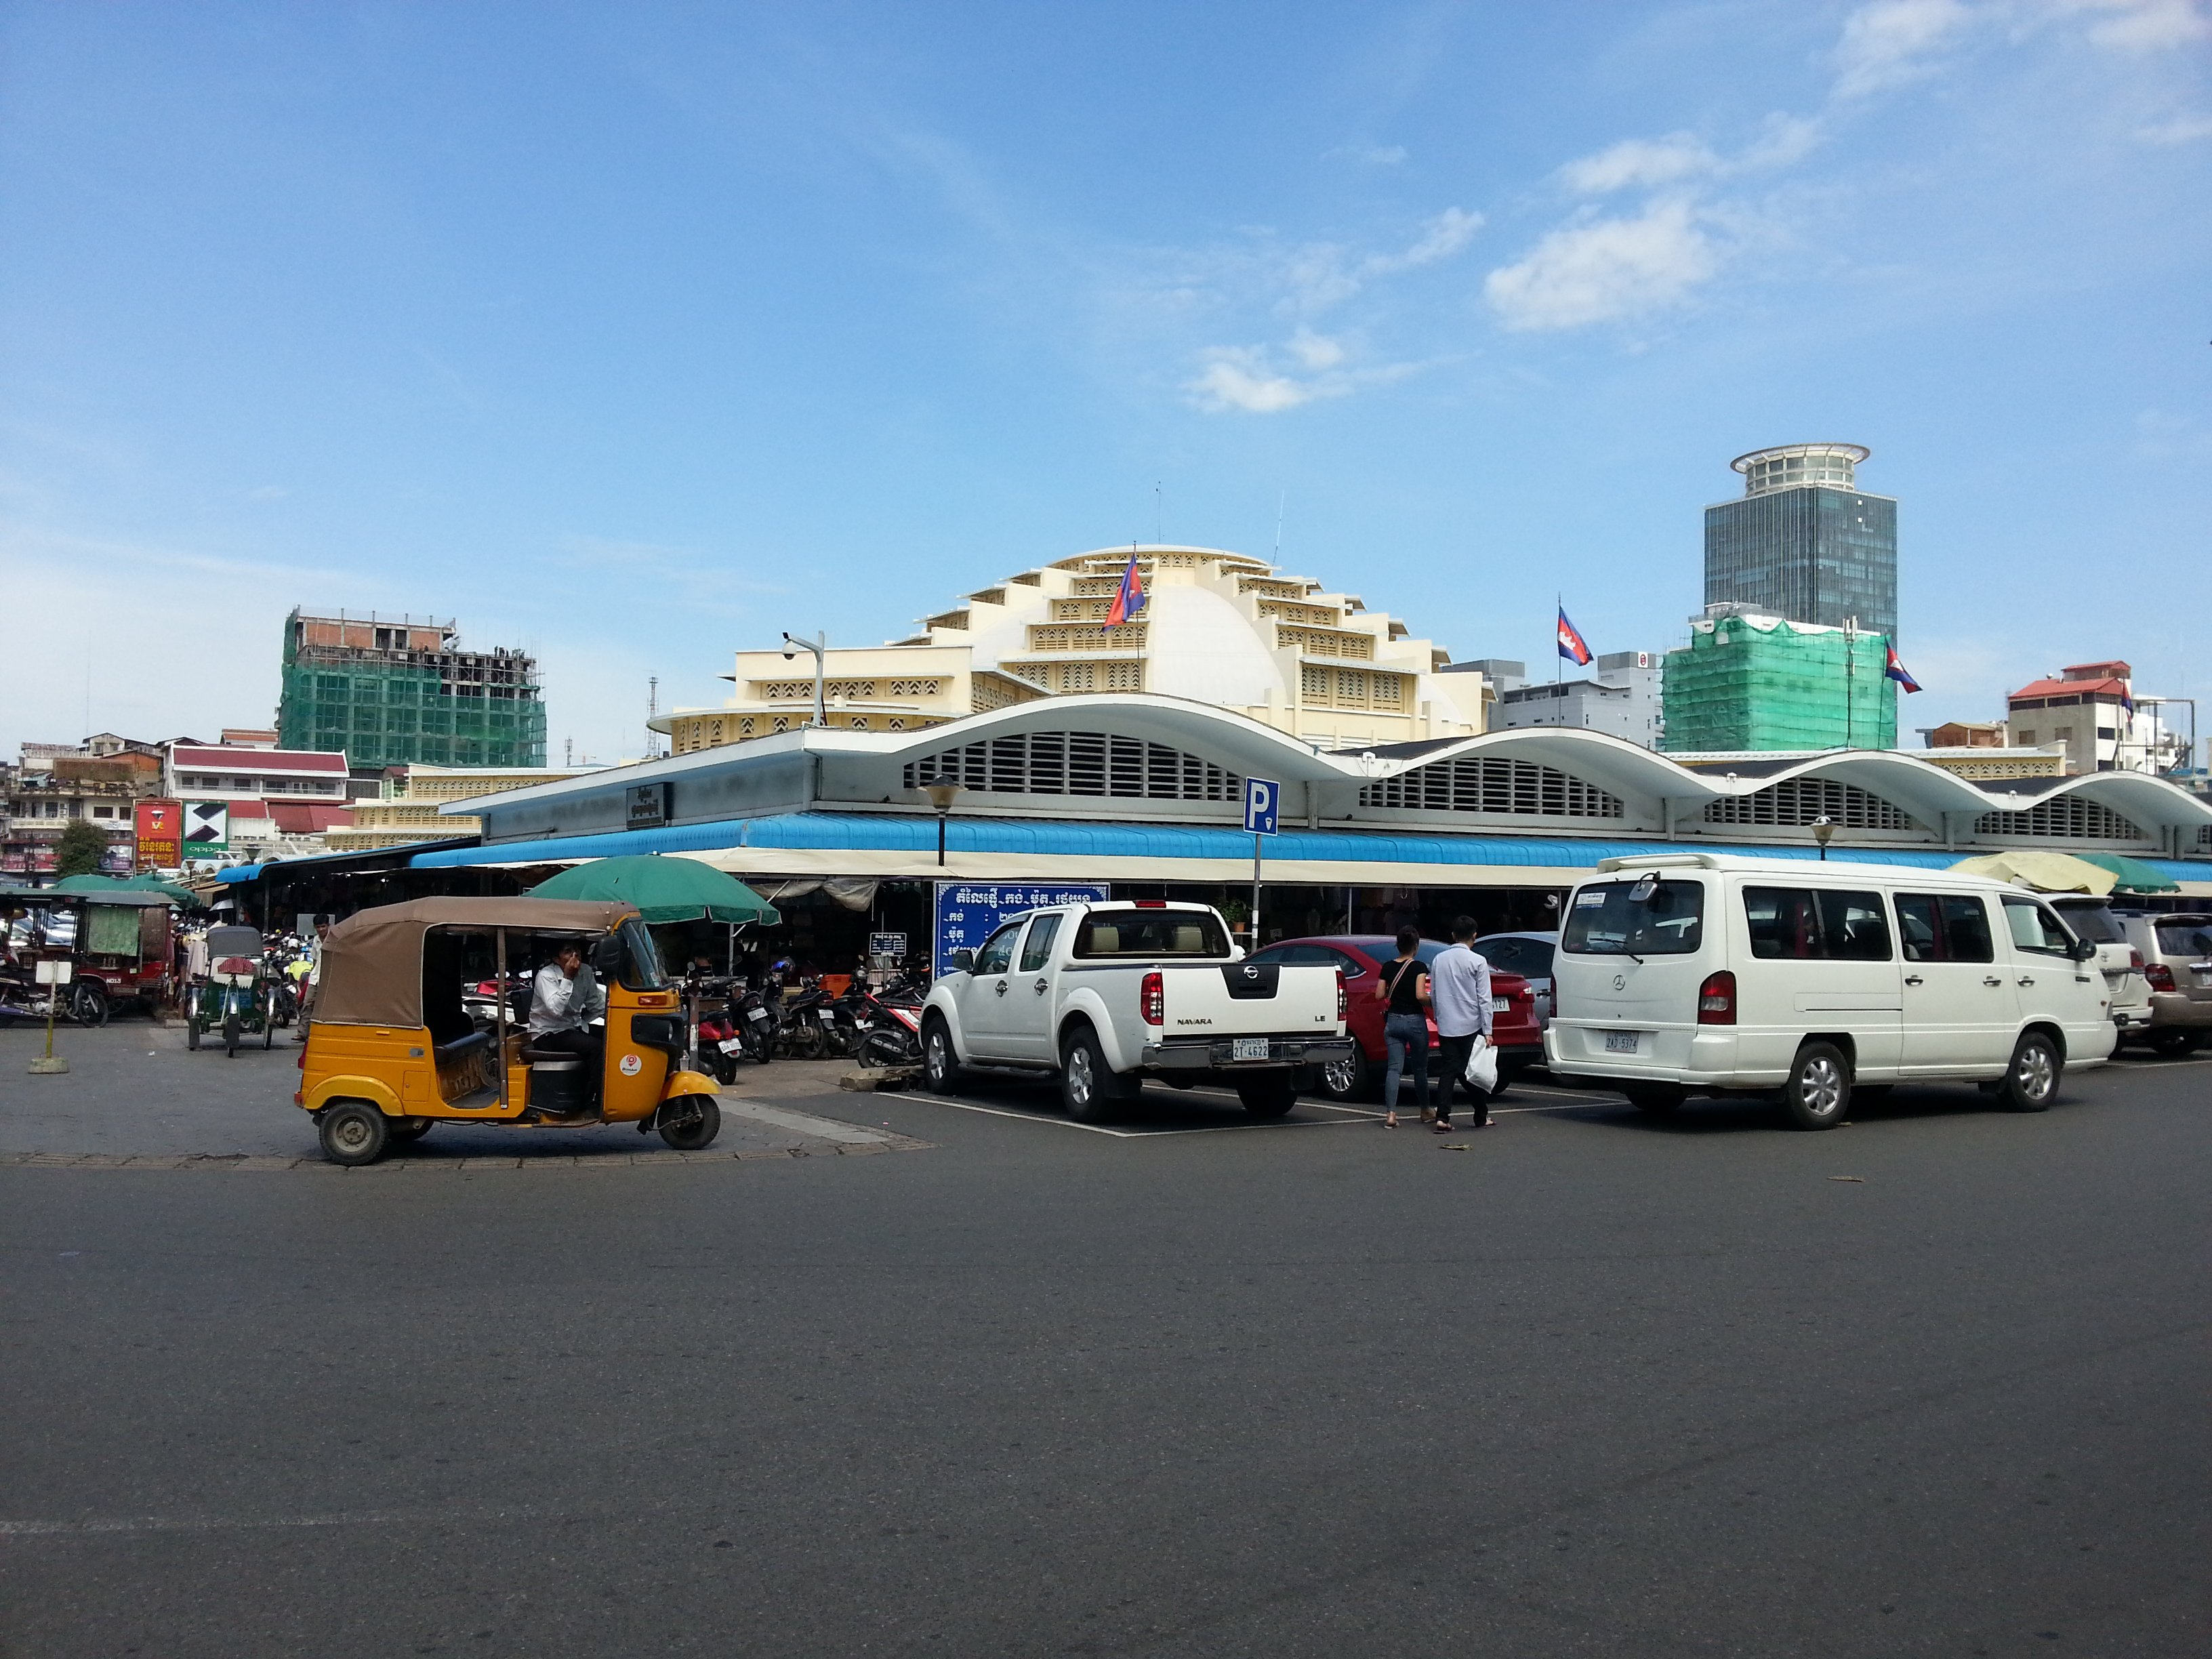 The Zing Hotel is opposite Phnom Penh Central Market